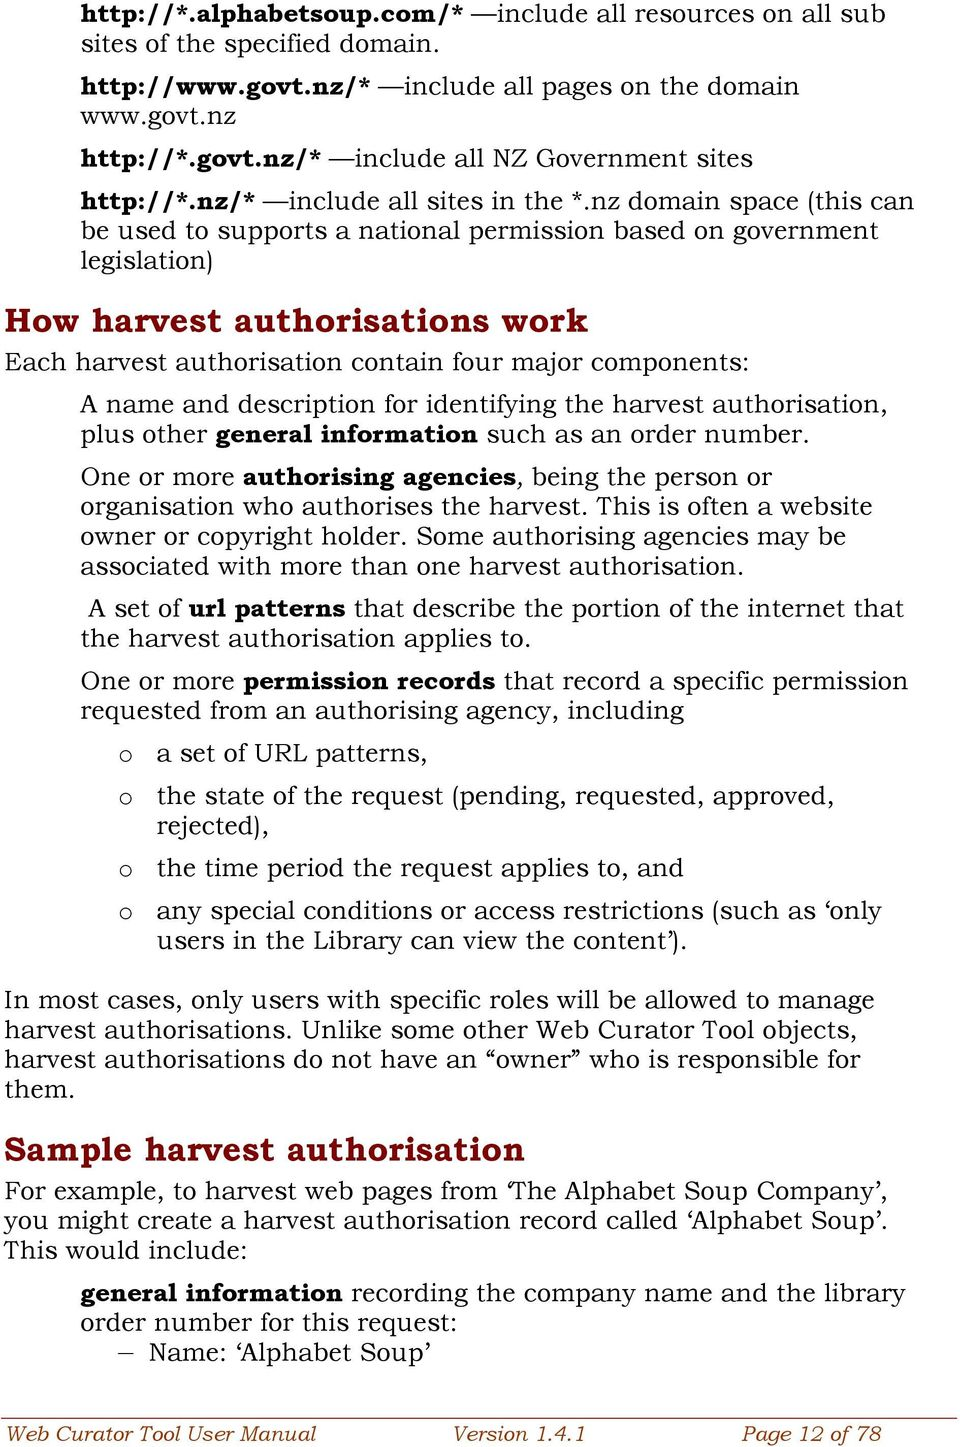 nz domain space (this can be used to supports a national permission based on government legislation) How harvest authorisations work Each harvest authorisation contain four major components: A name